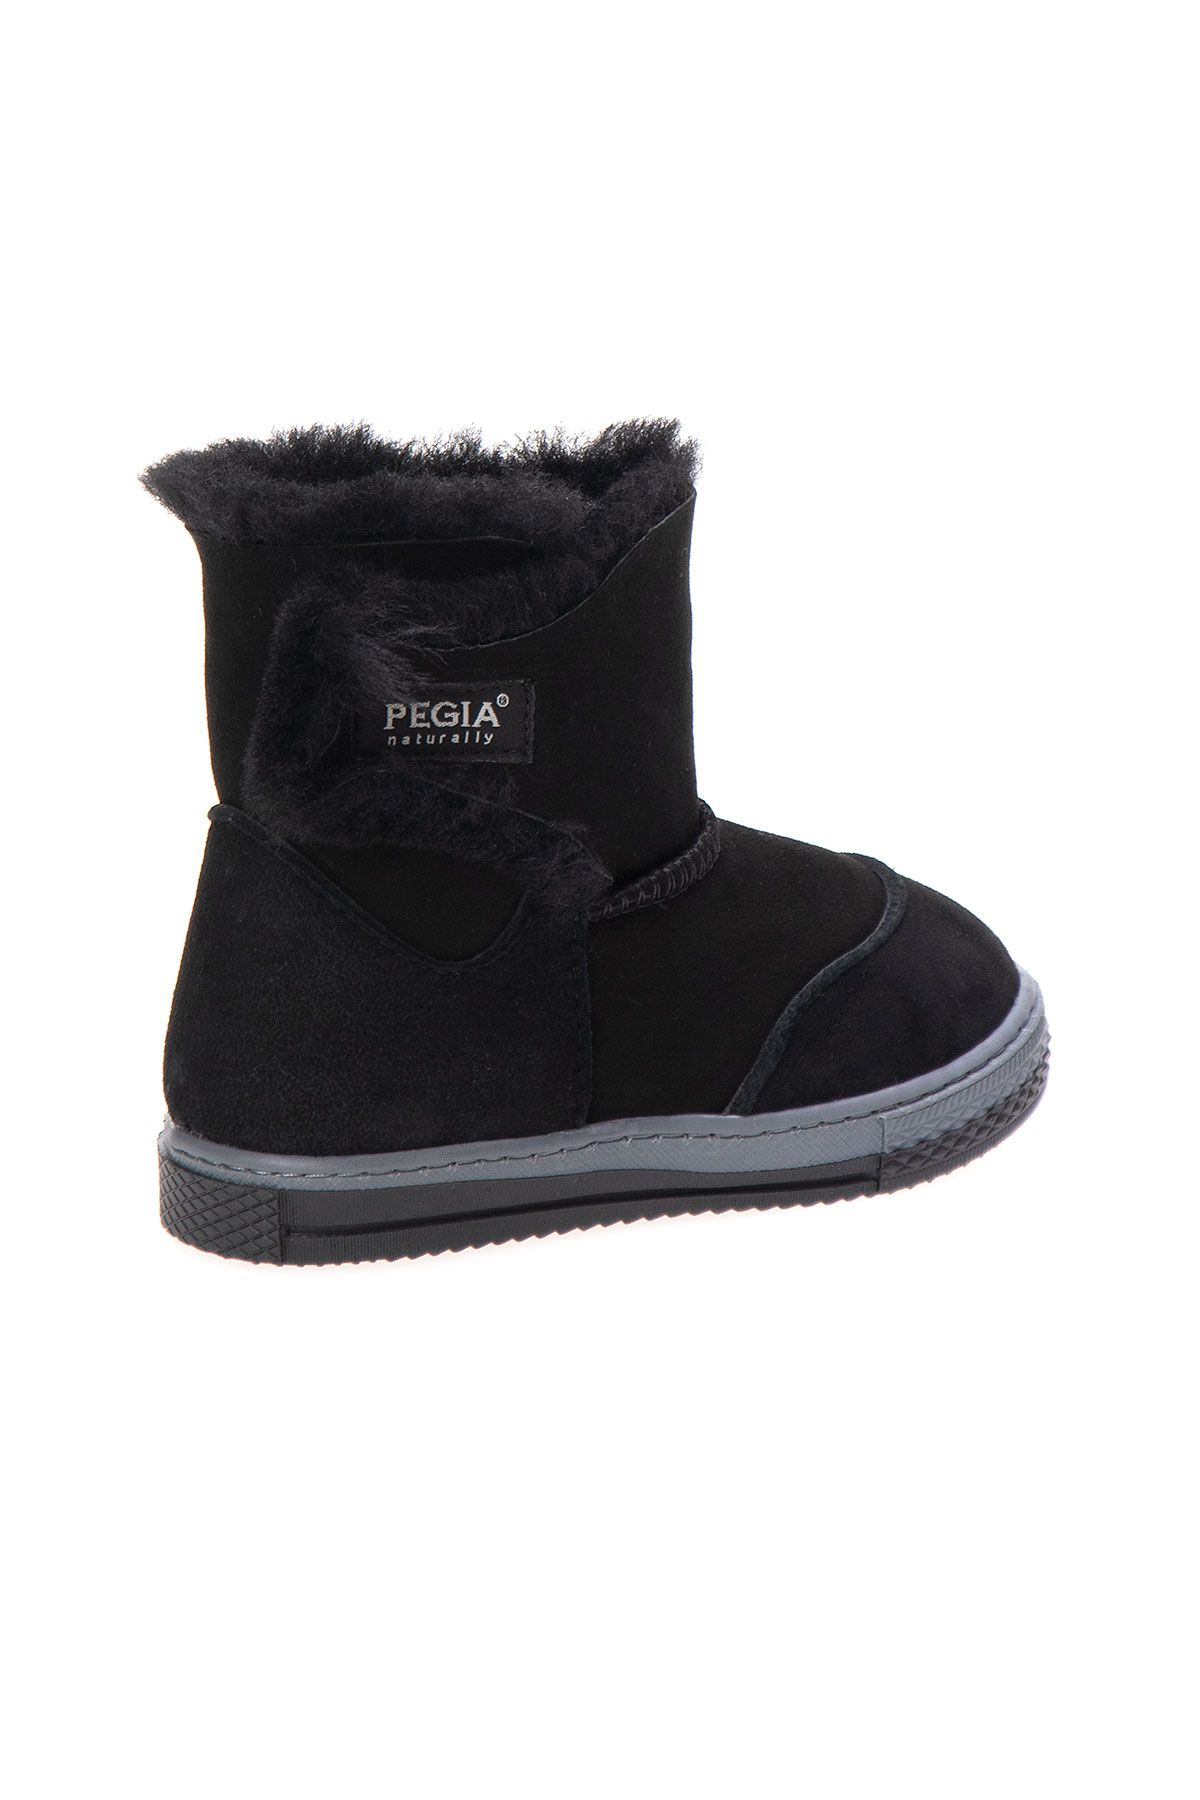 Pegia Sheepskin Children's Boots 186007 Black